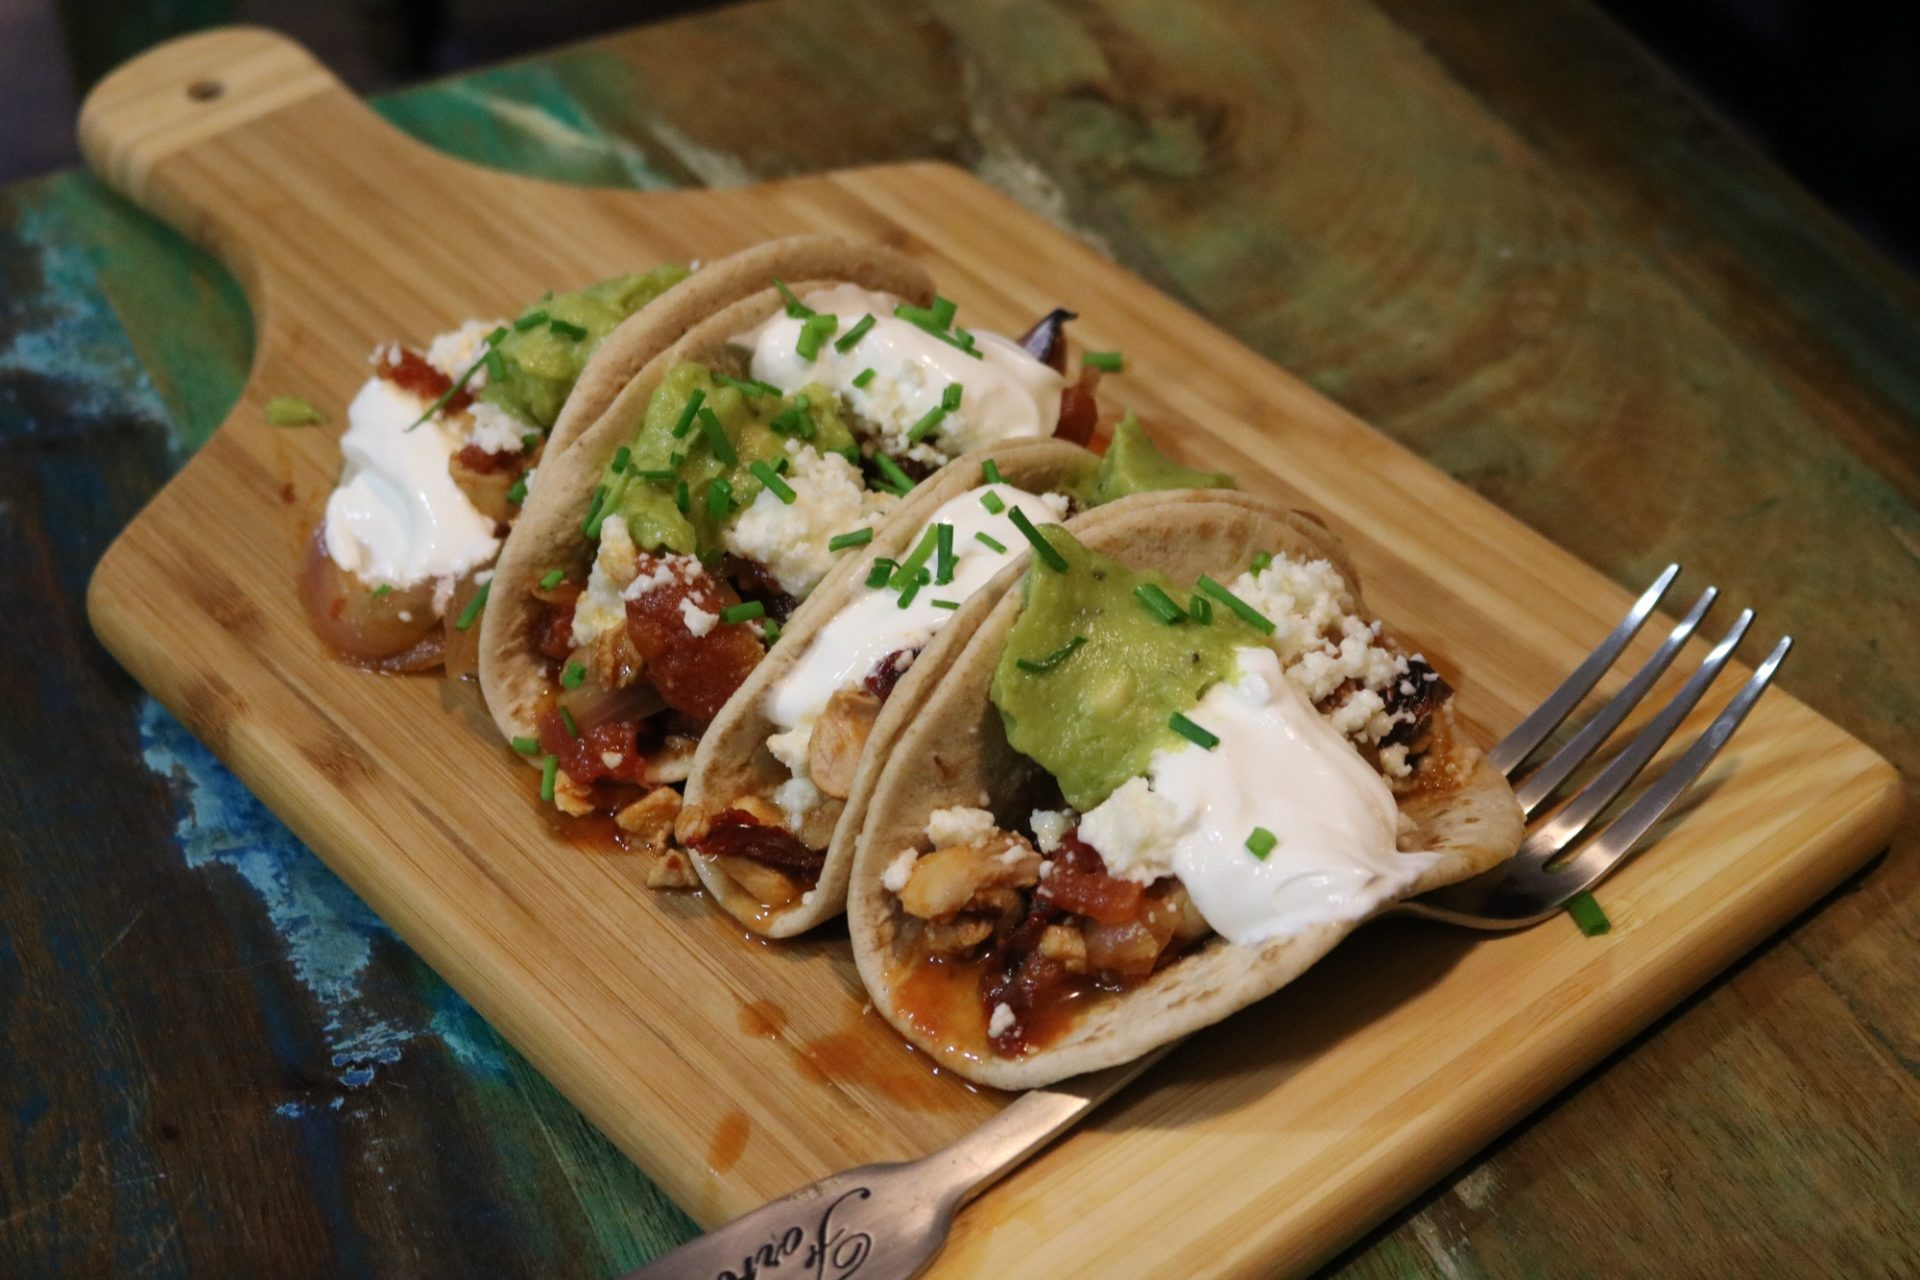 Spicy Chicken Tinga Tacos With Guacamole and Queso Fresco - Low Carb 1